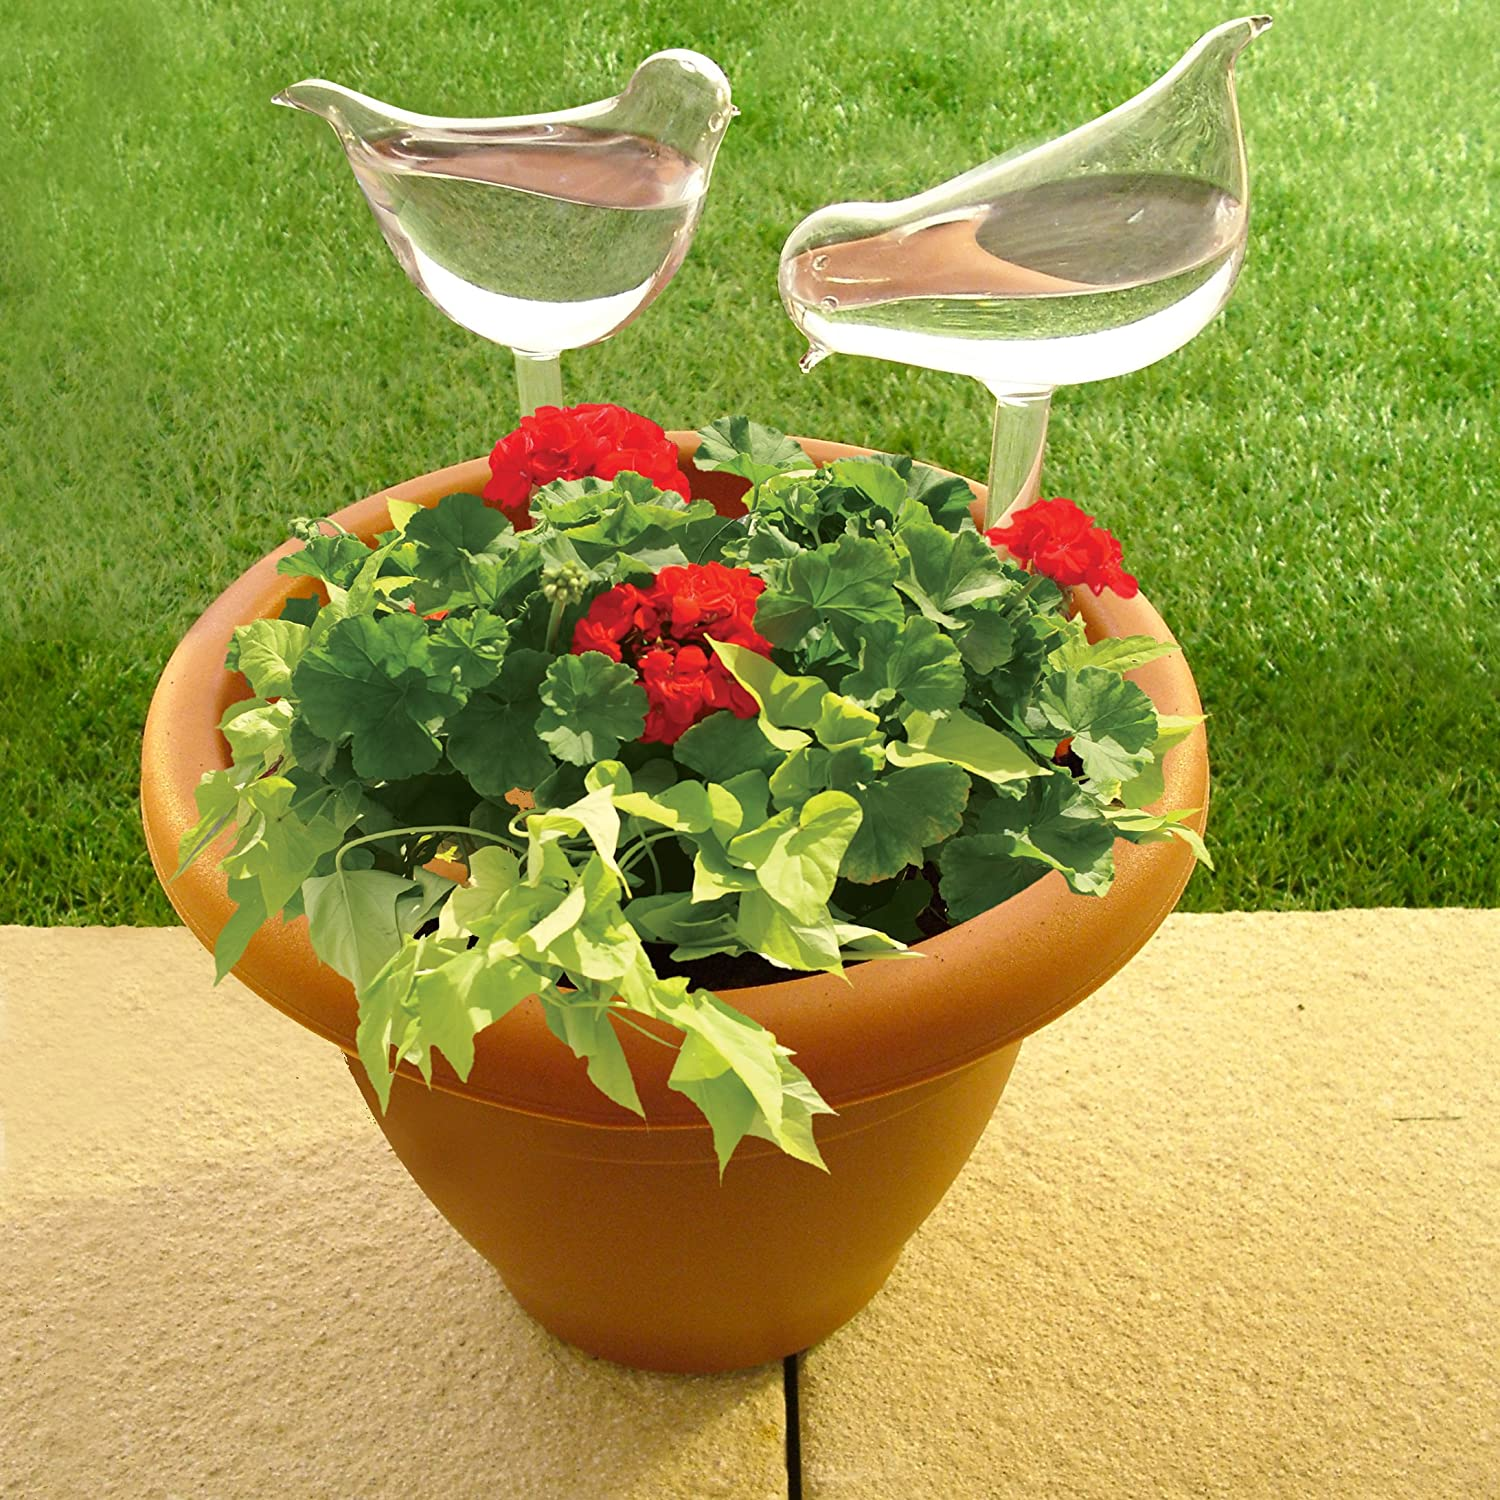 Glass Plant Flowers Water Feeder Self Watering Bird Design Plant Waterings In UK